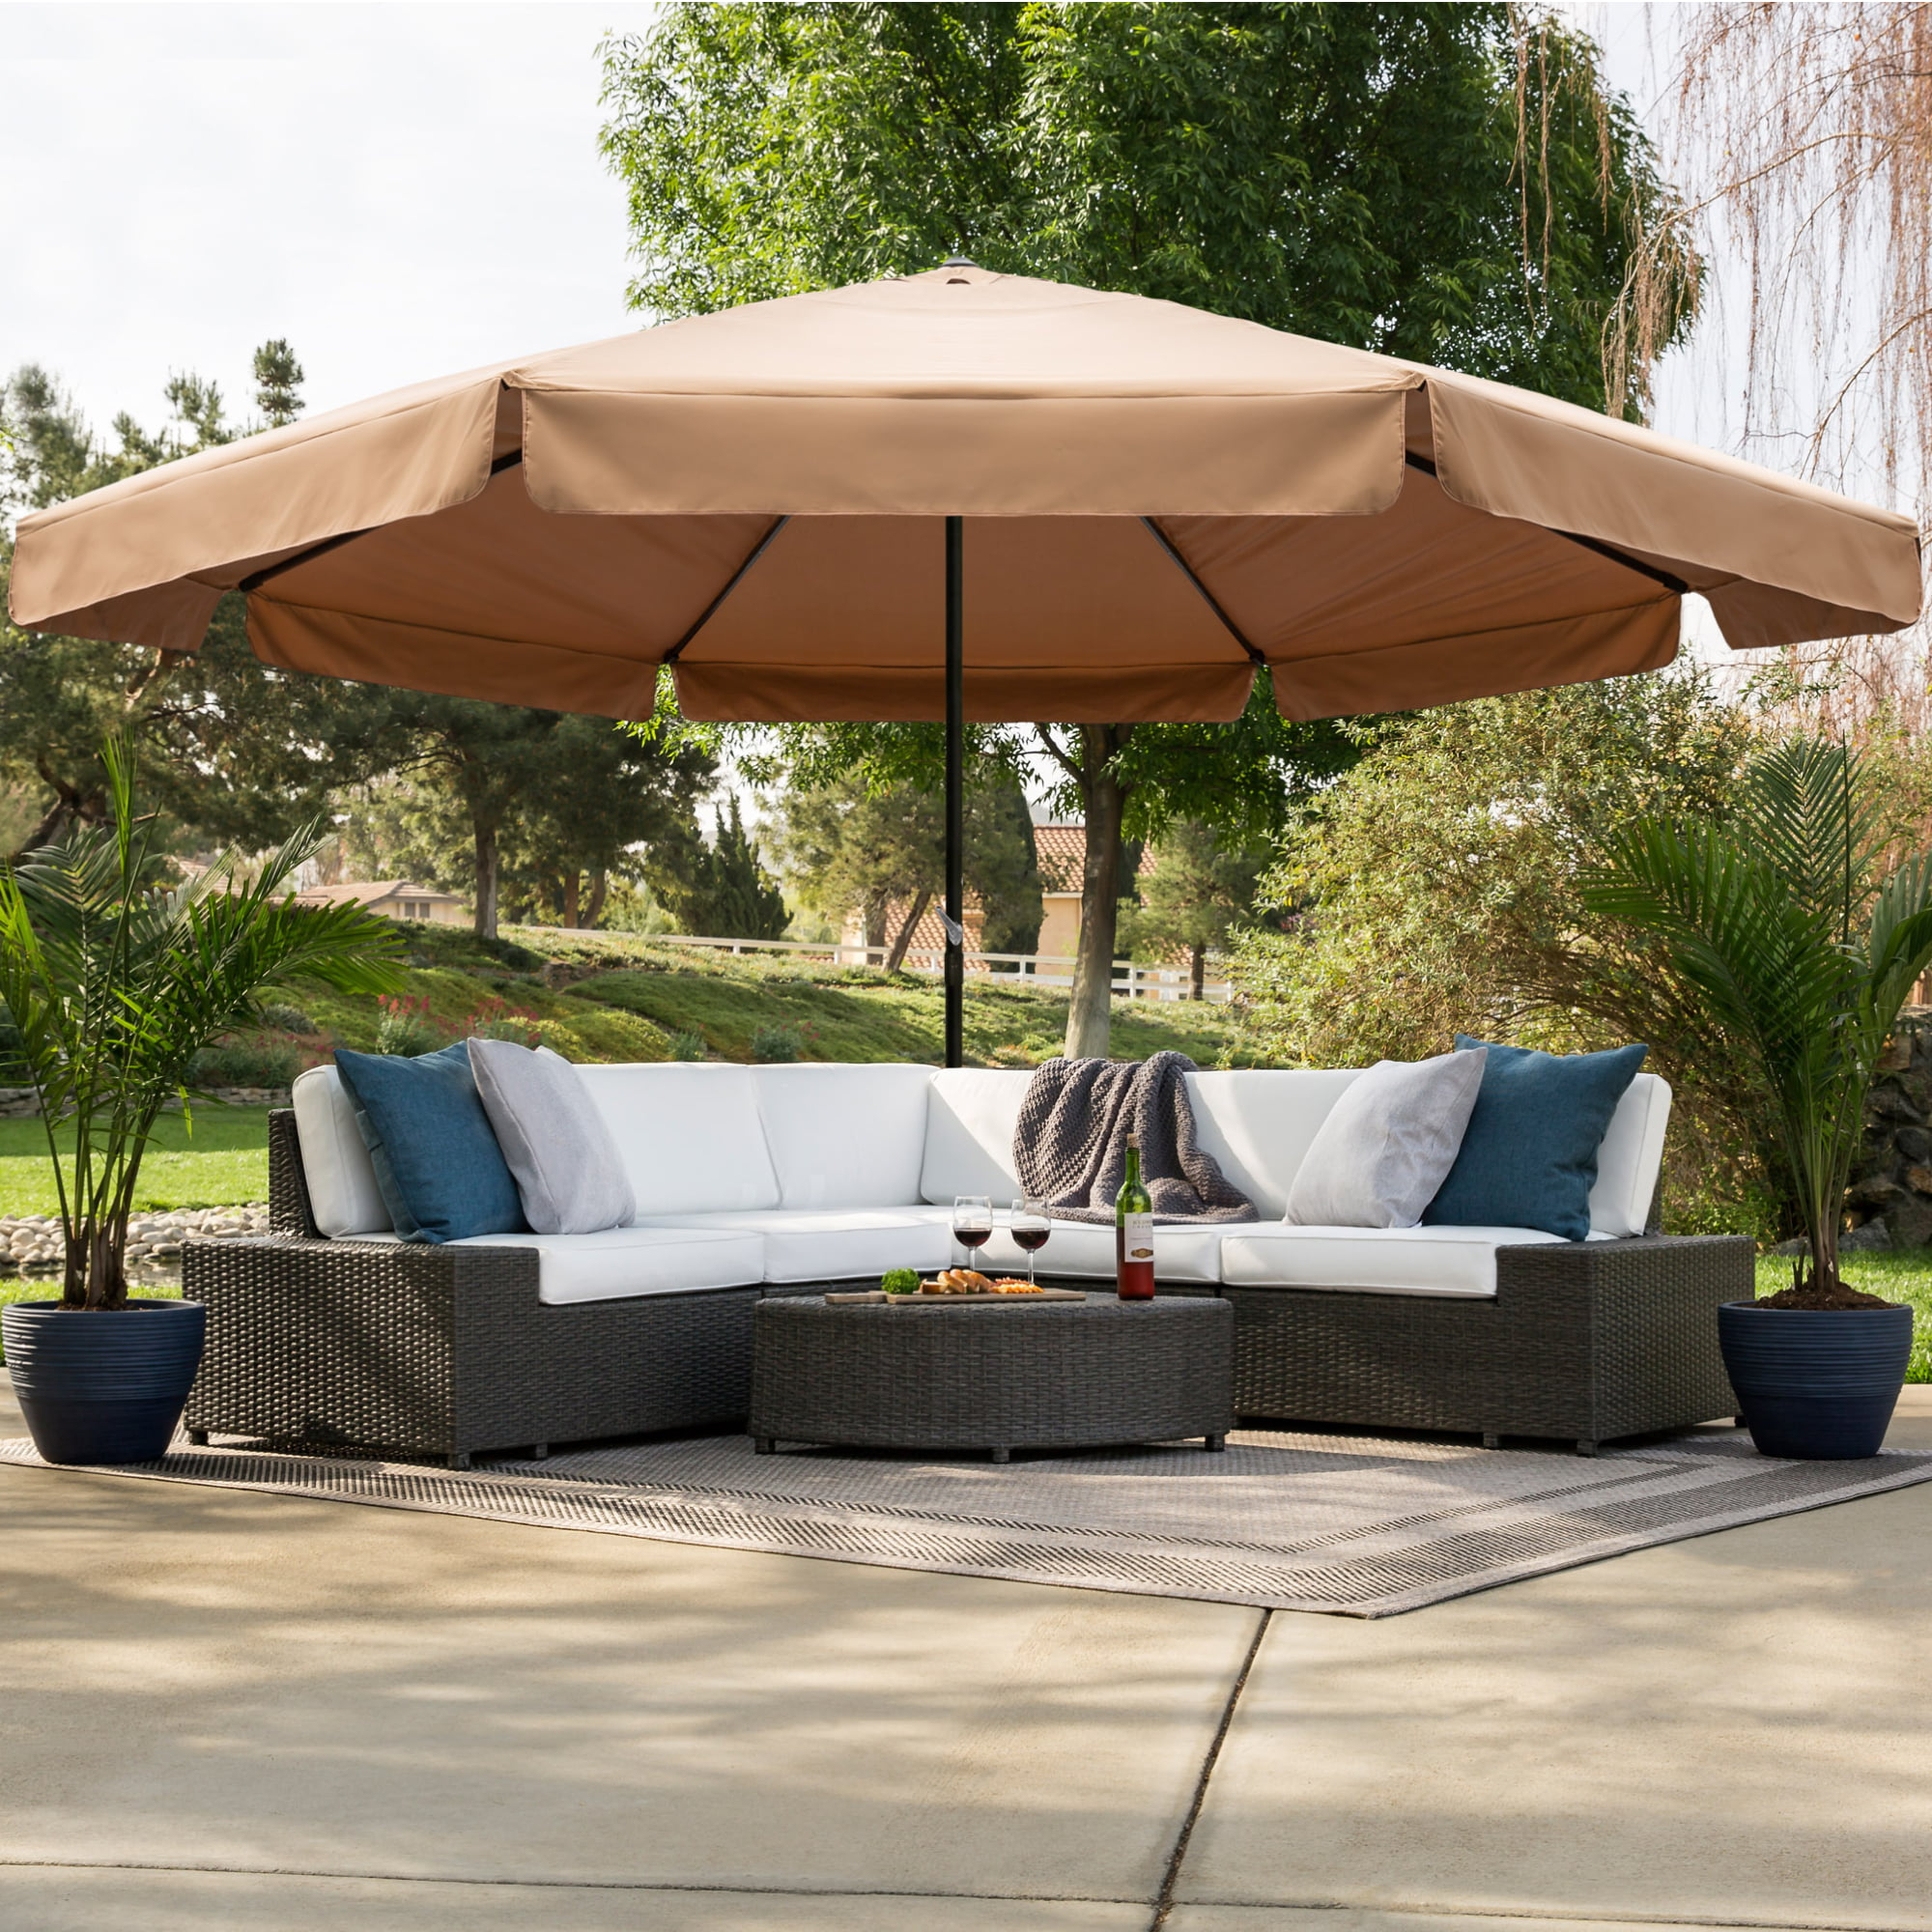 Best Choice Products 16ft Extra Large Outdoor Patio Market Umbrella W Cross Base Crank Handle Air Vent Tan Walmart Com Walmart Com